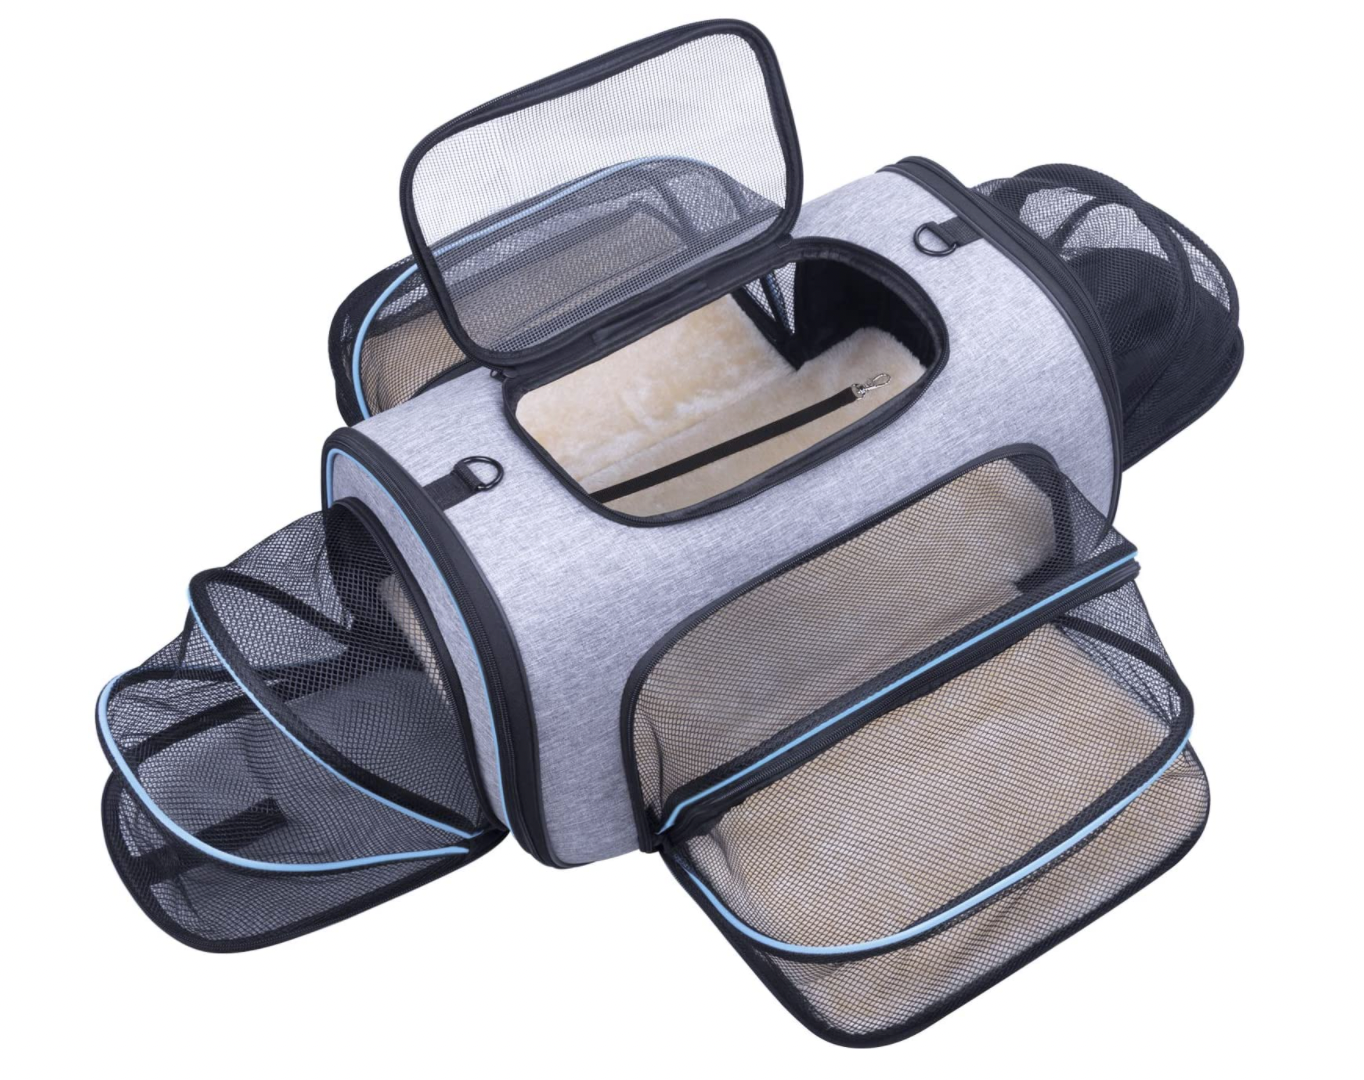 Siivton Exapandable Pet Carrier